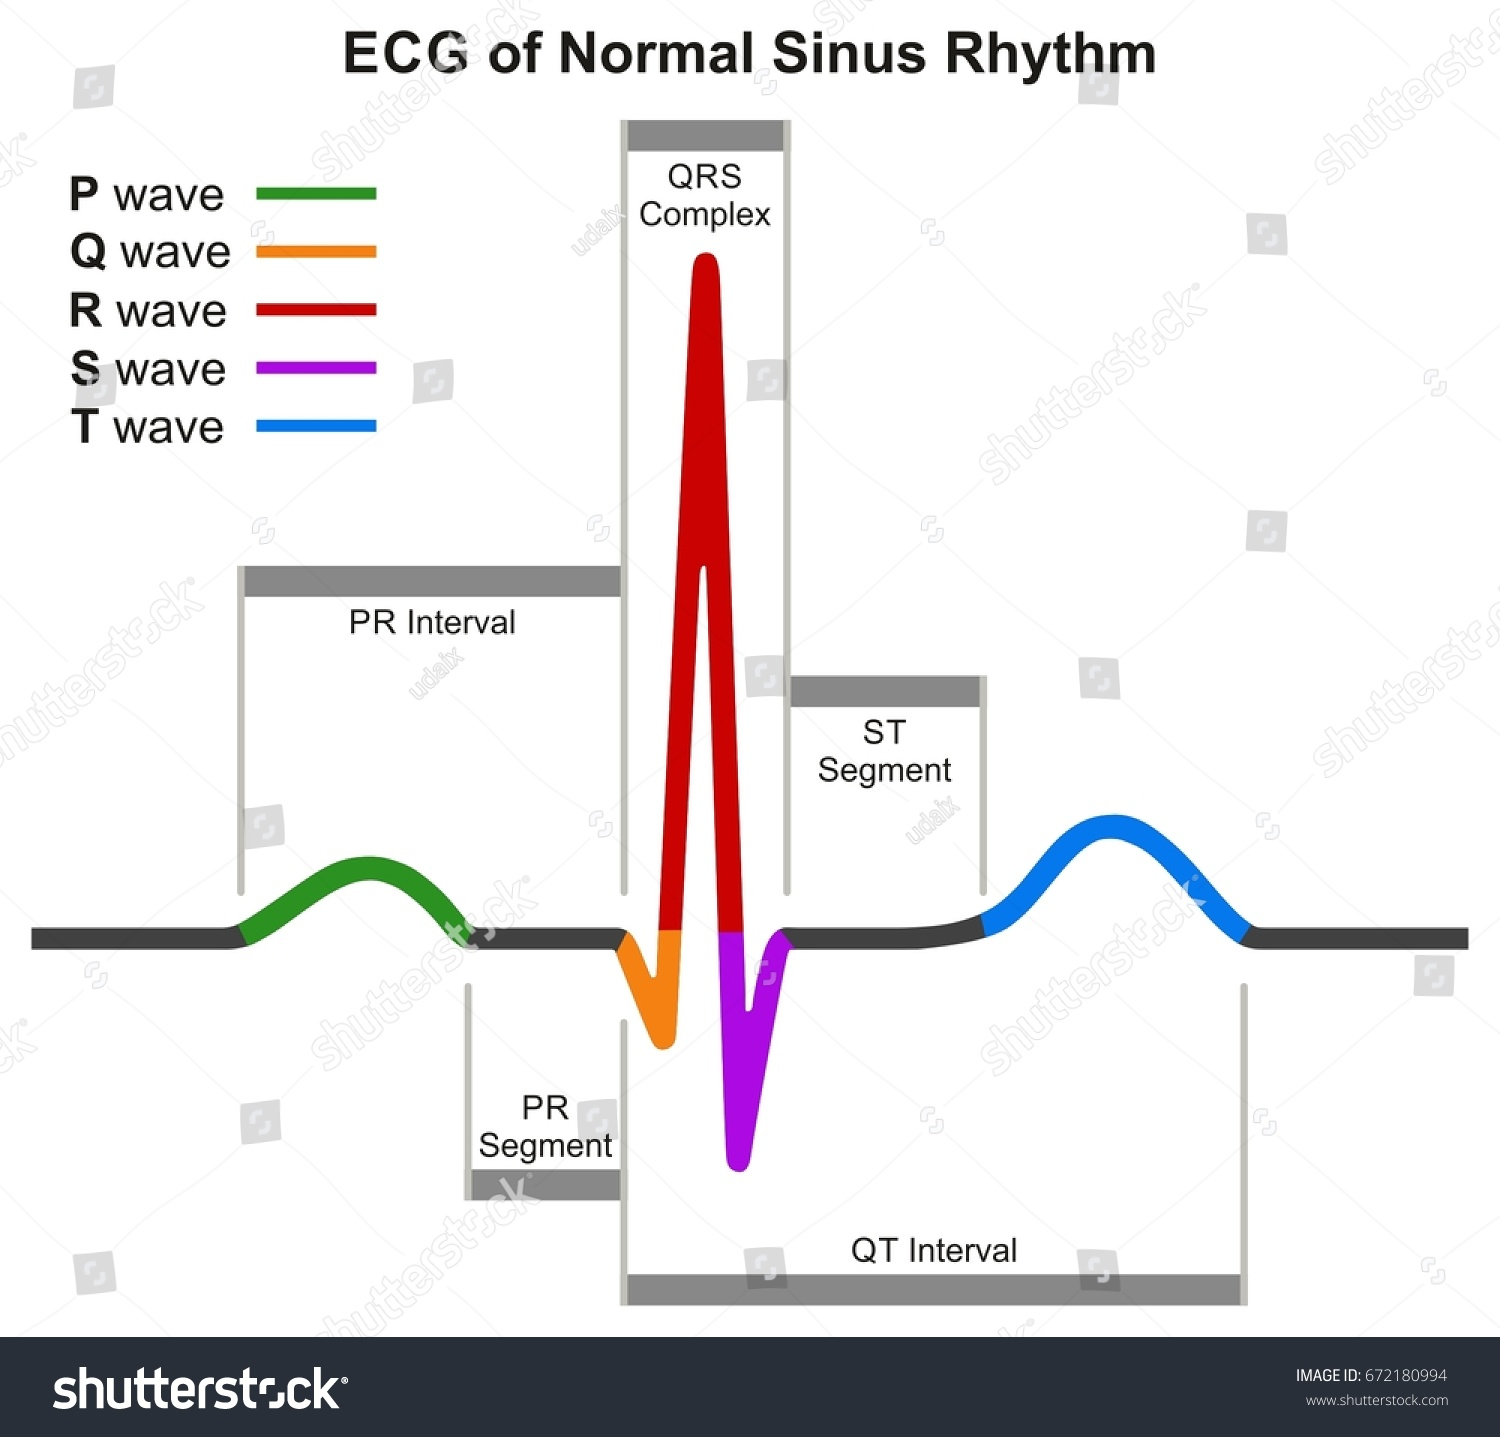 Ecg Normal Sinus Rhythm Infographic Diagram Image